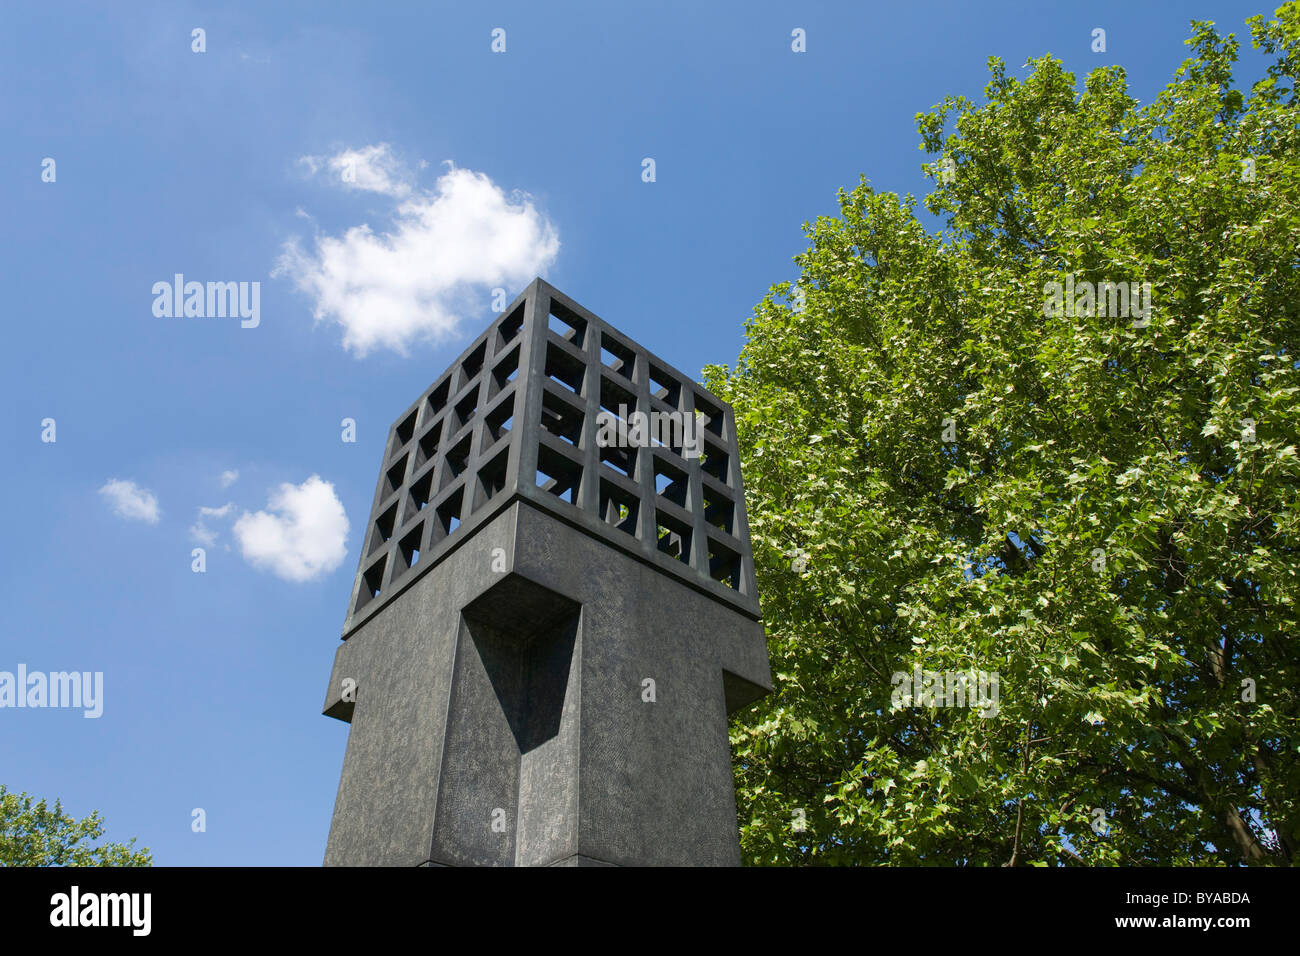 Memorial to the victims of the Nazi tyranny by Andreas Sobeck, 1985, on Platz der Opfer des Nationalsozialismus - Stock Image